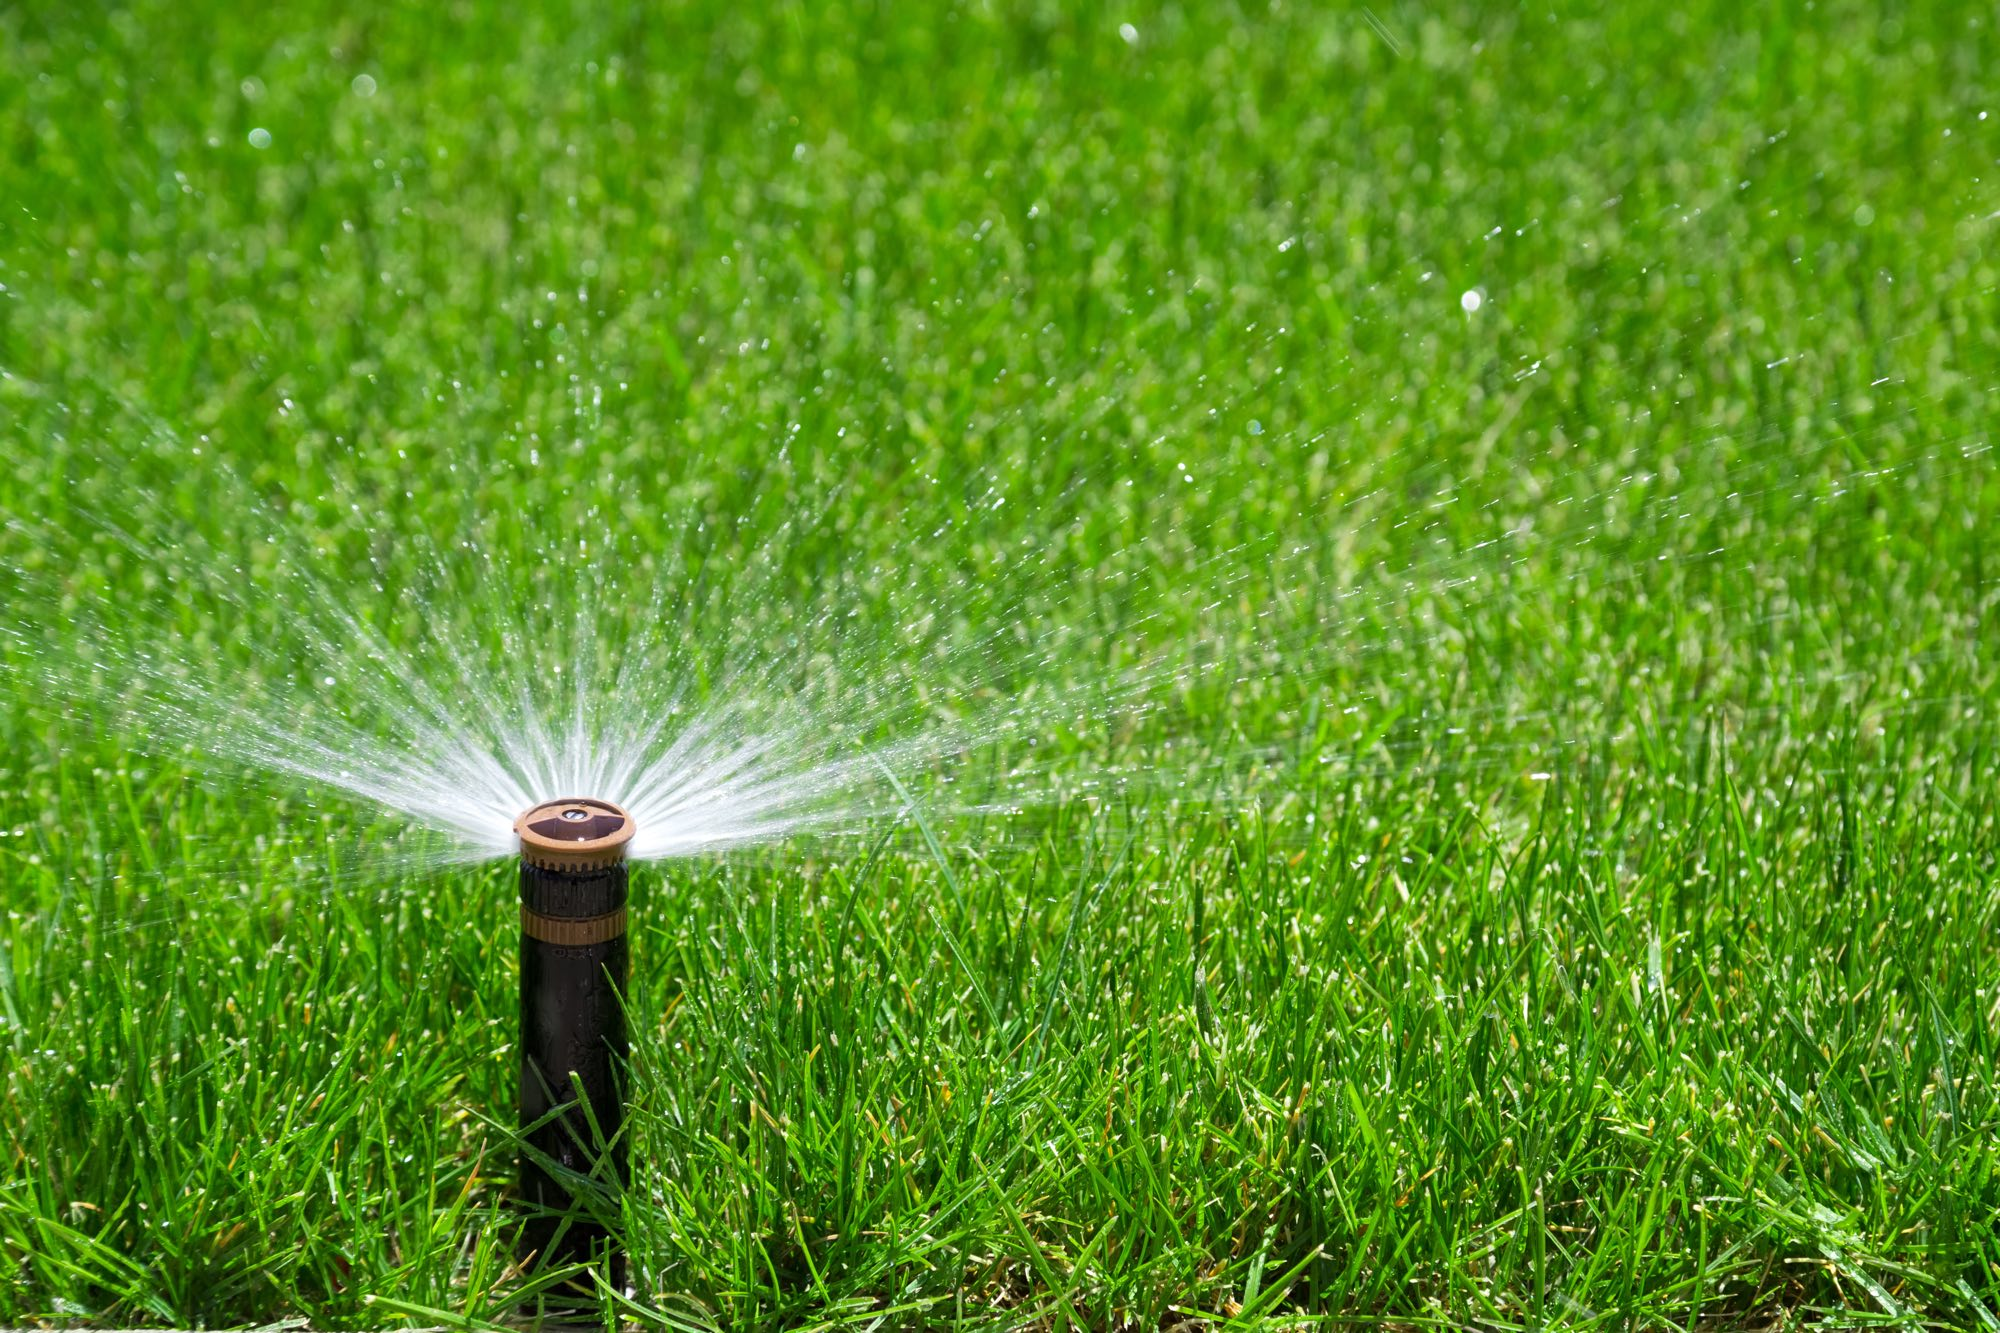 water sprinkler green grass